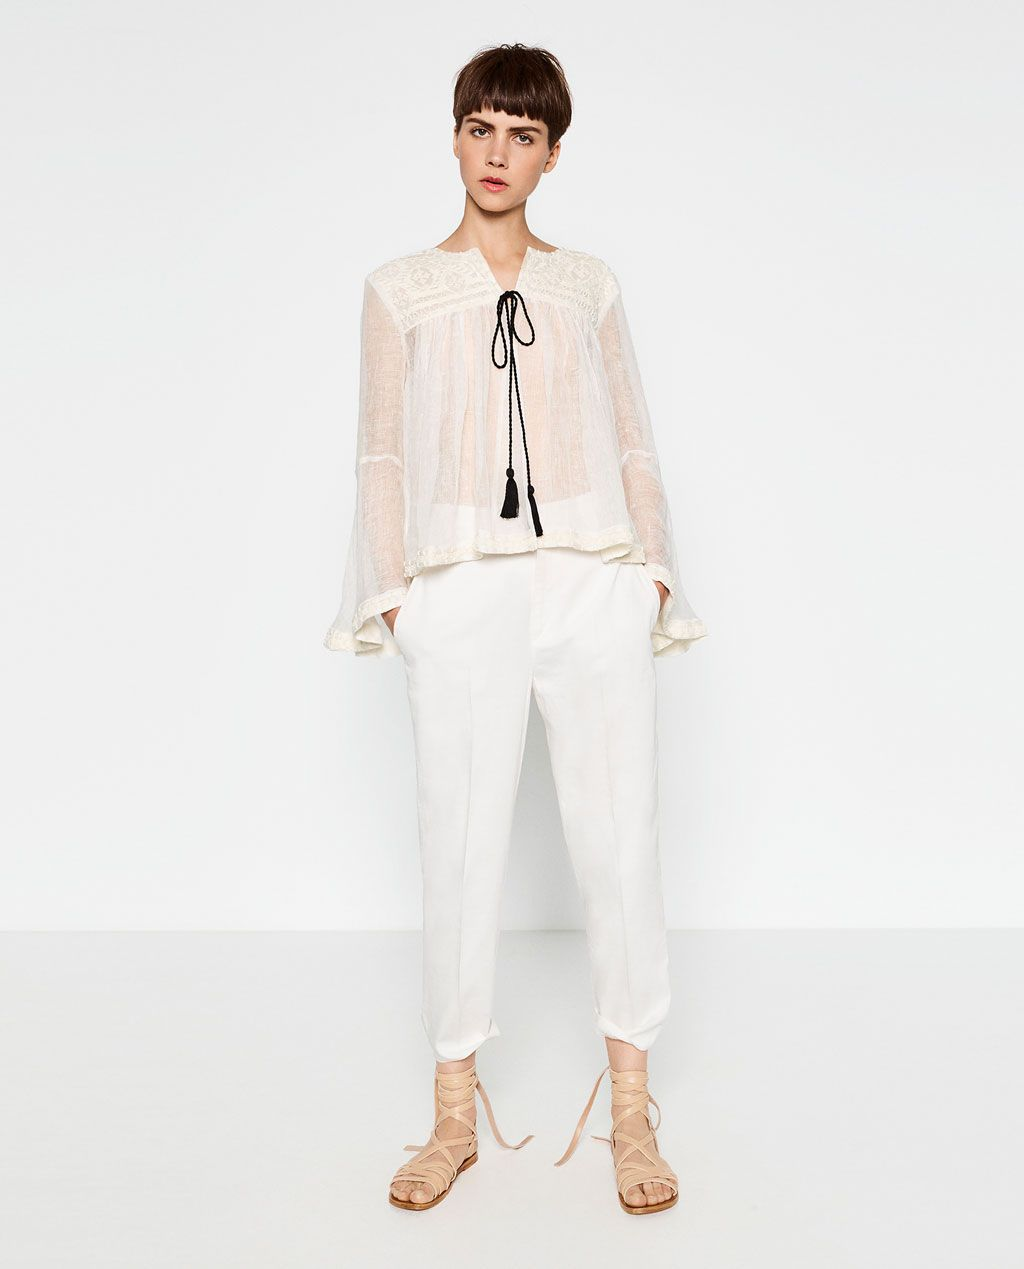 Image of embroidered linen jacket from zara pretapatterns